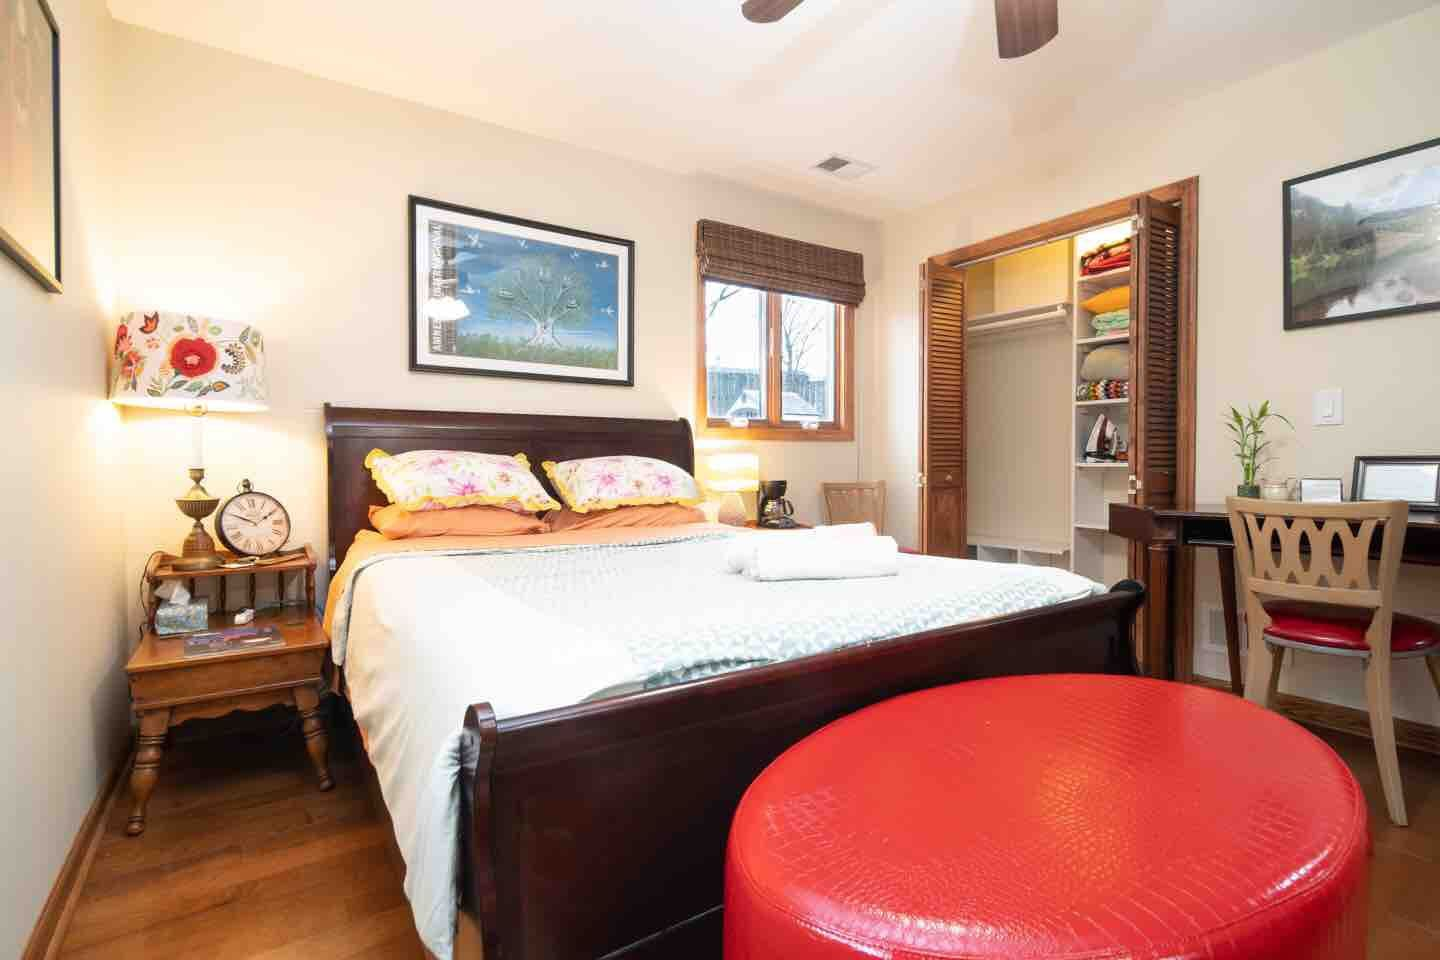 Bohemian oasis is right here! Queen size bed, small desk, coffee pot, cool artwork, bold colors